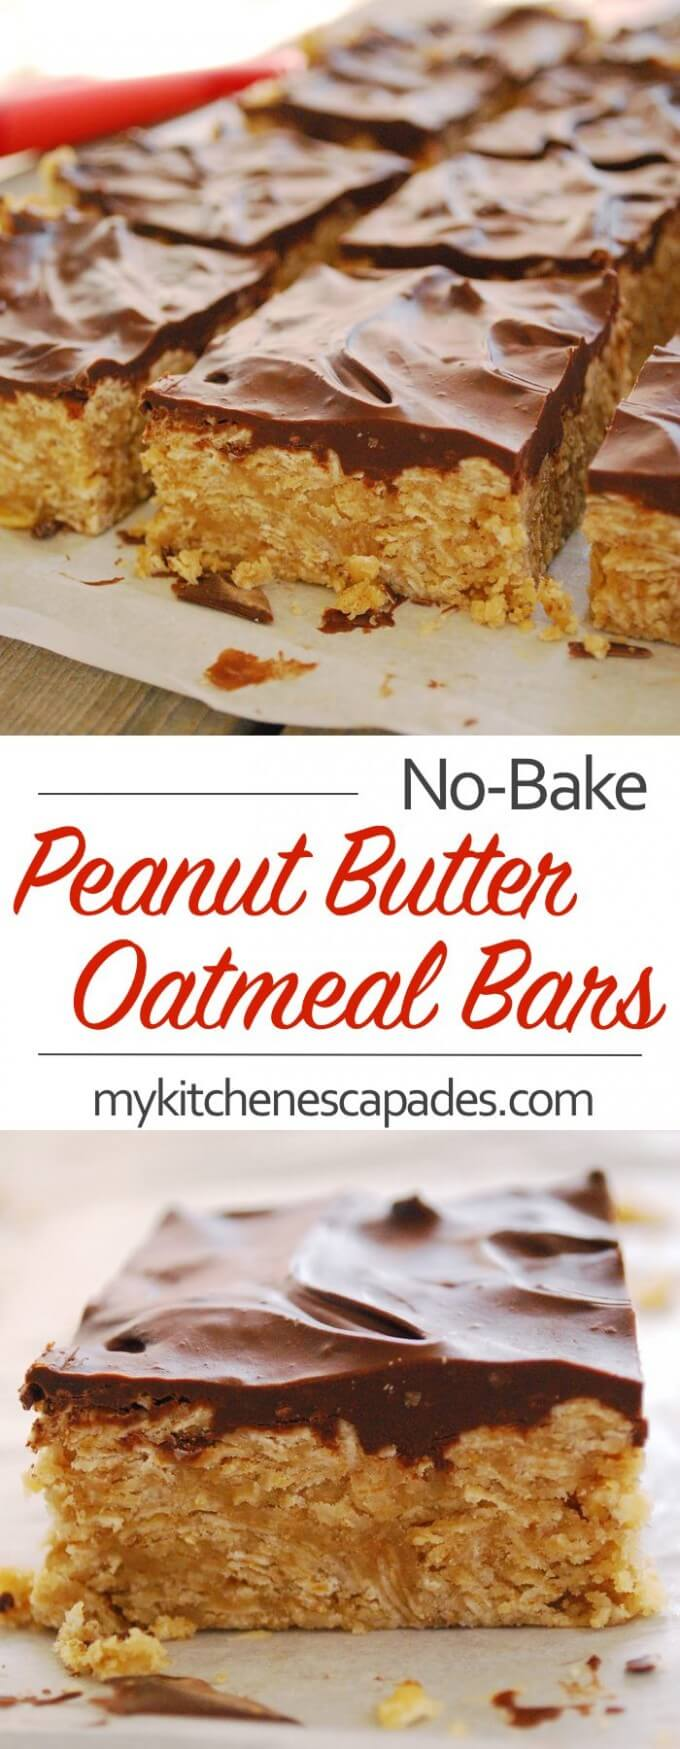 No Bake Peanut Butter Oatmeal Bars - a simple recipe that is topped with melted chocolate. Ready in minutes